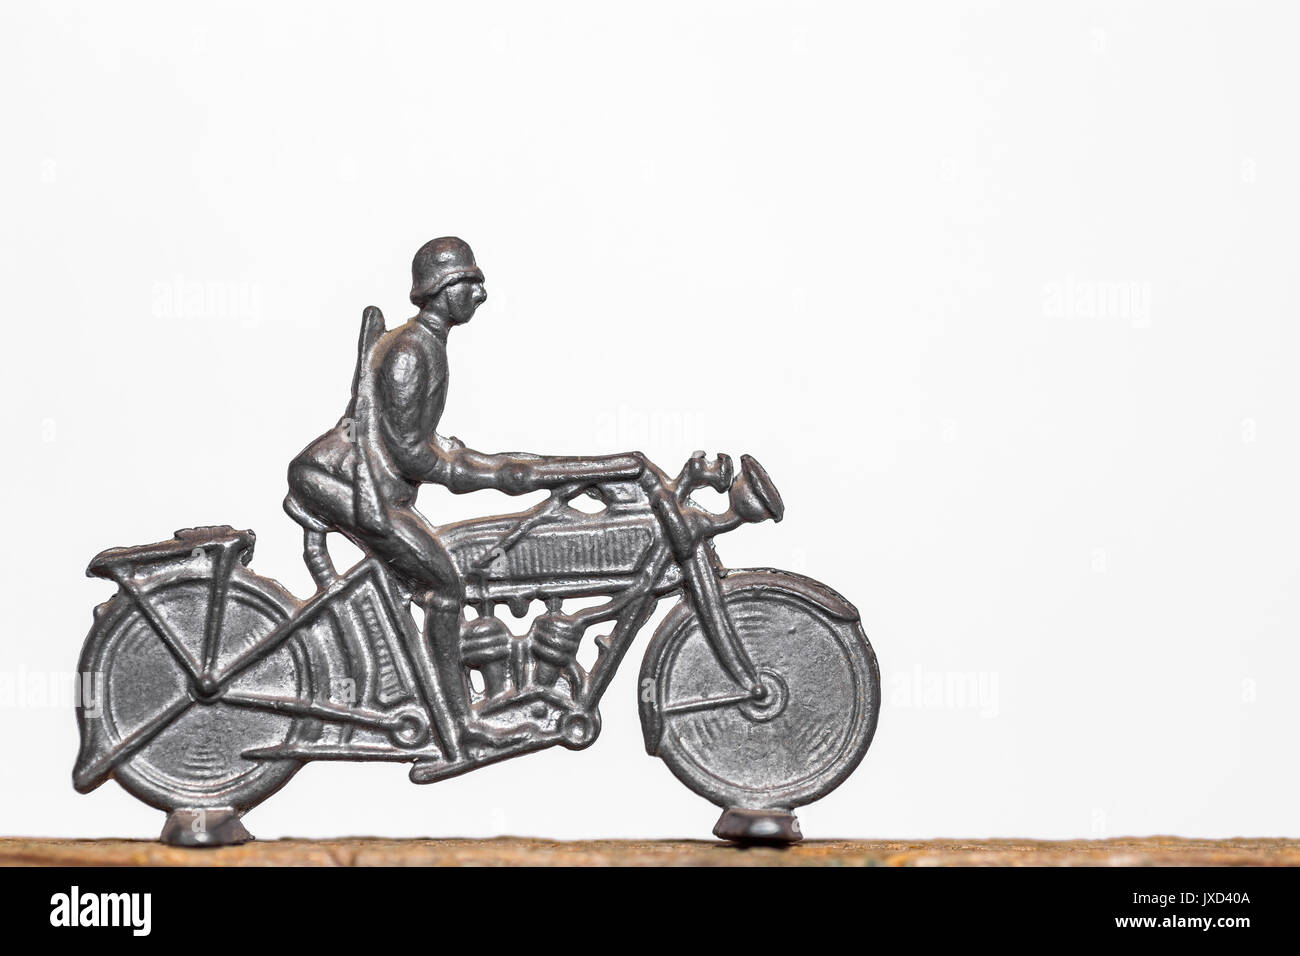 Tin soldier on motorcycle - Stock Image